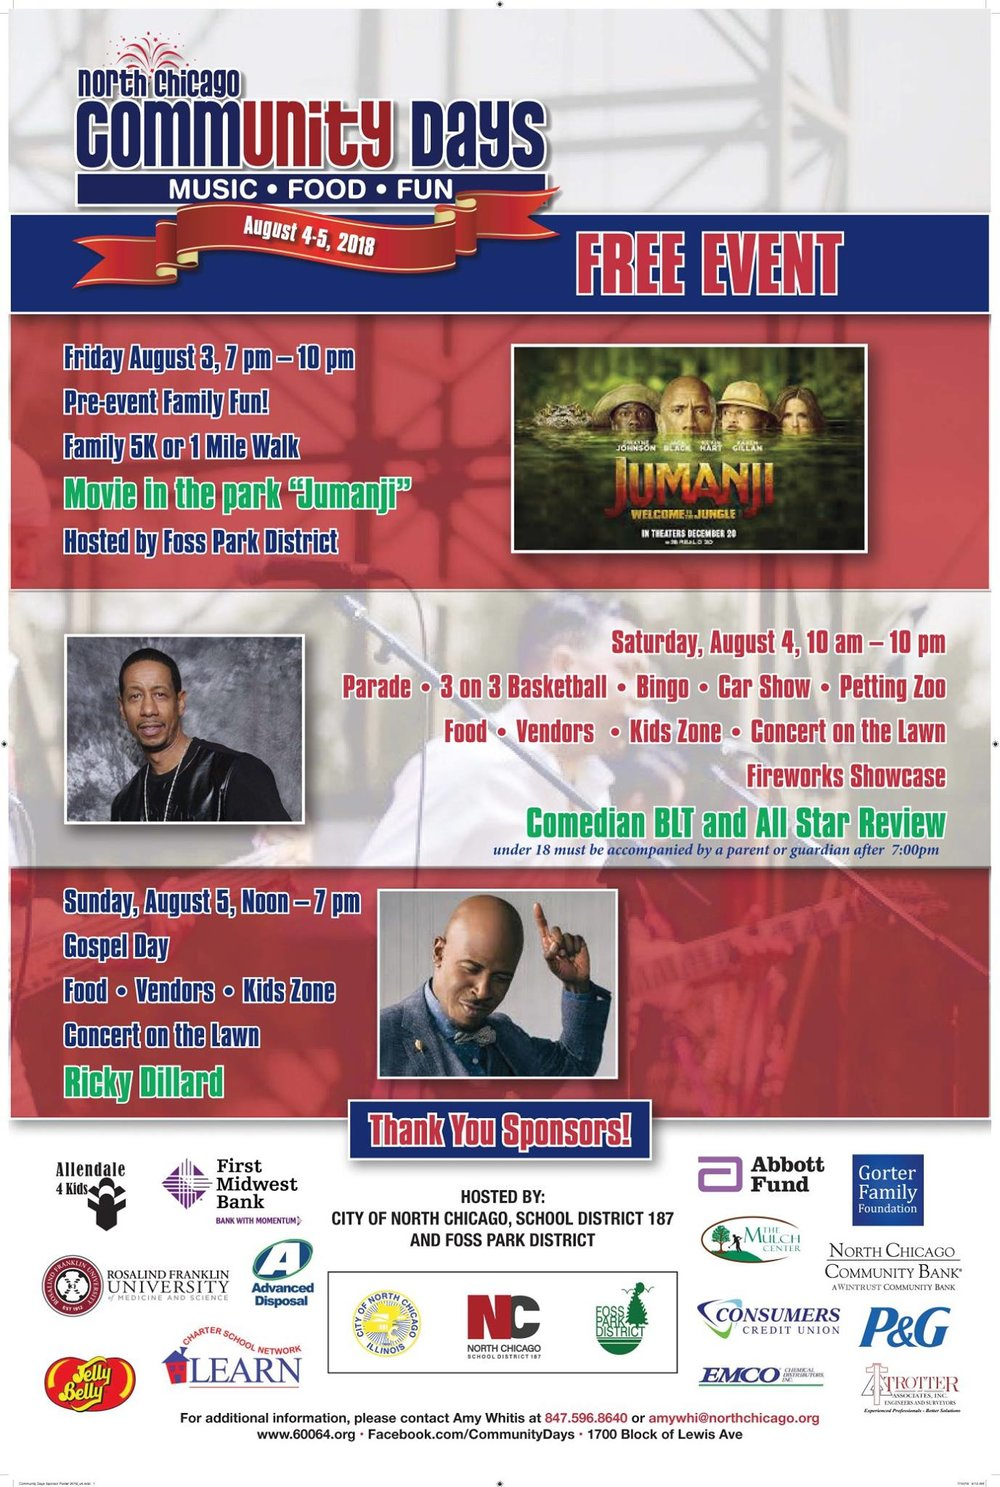 North chicago community days event poster.jpg